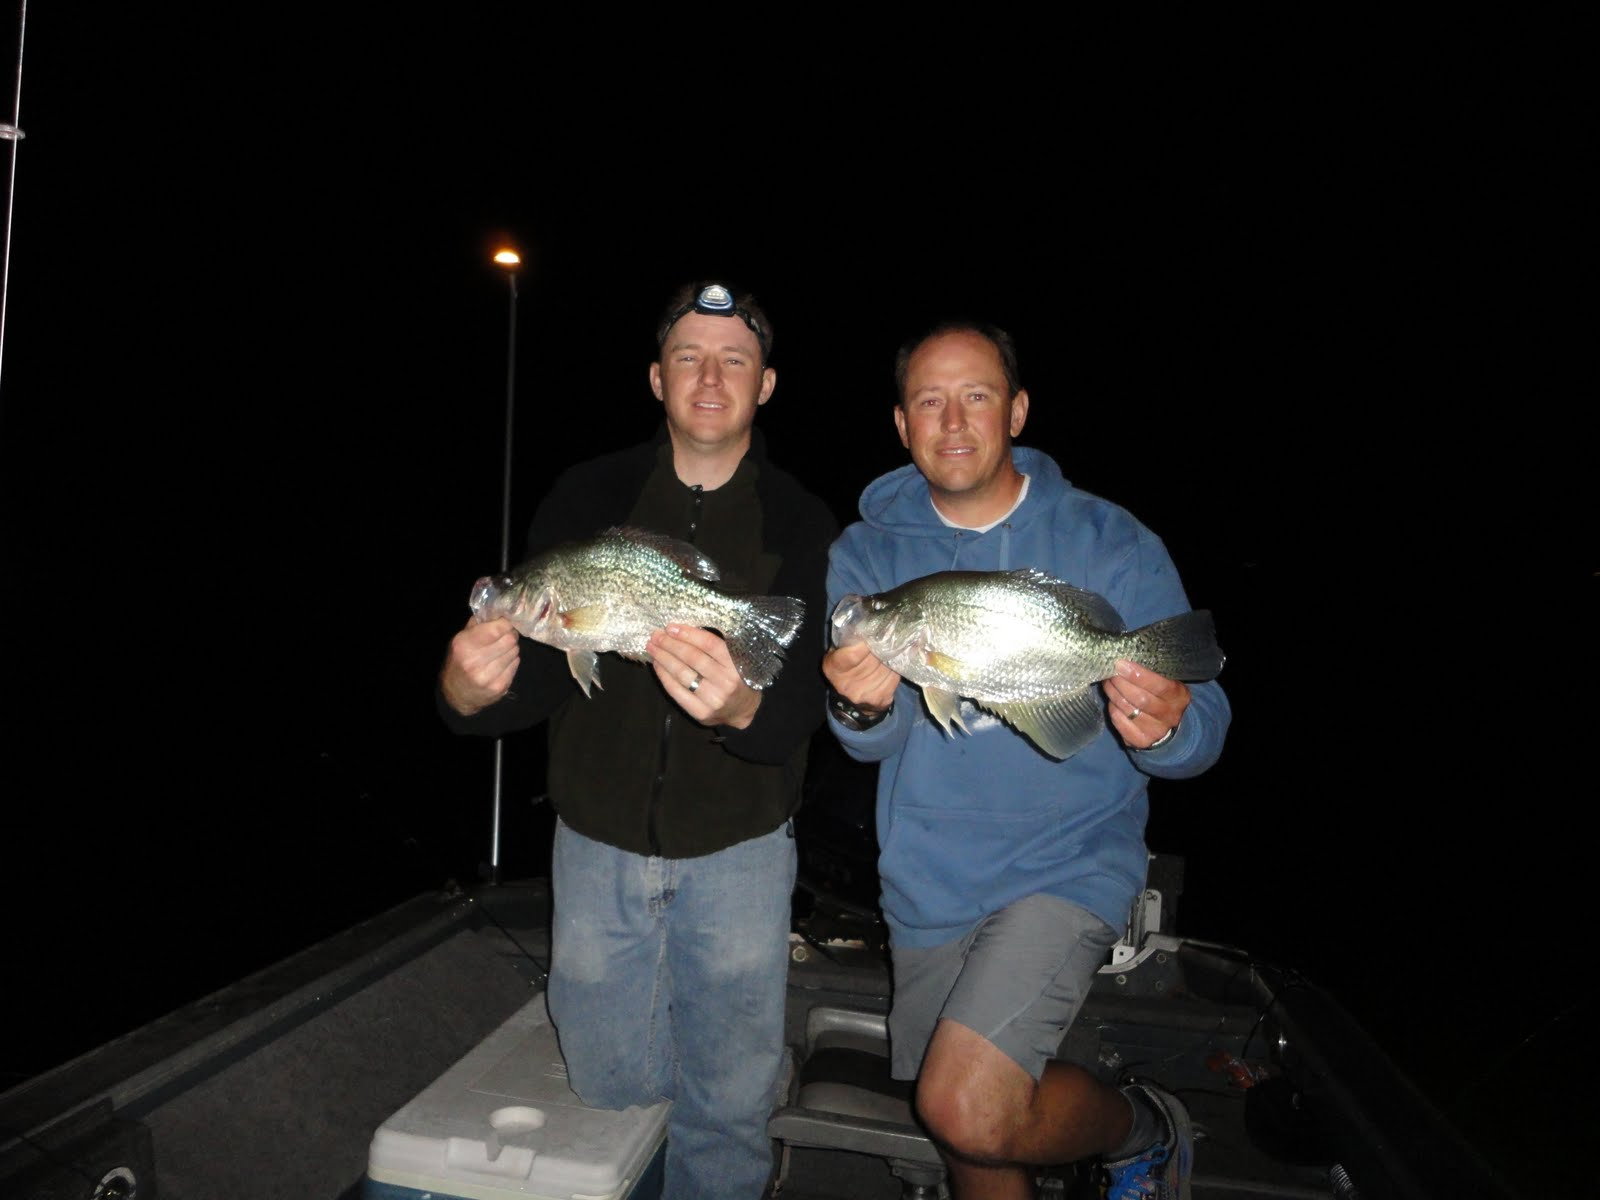 Jay scott outdoors night crappie fishing for Crappie fishing at night